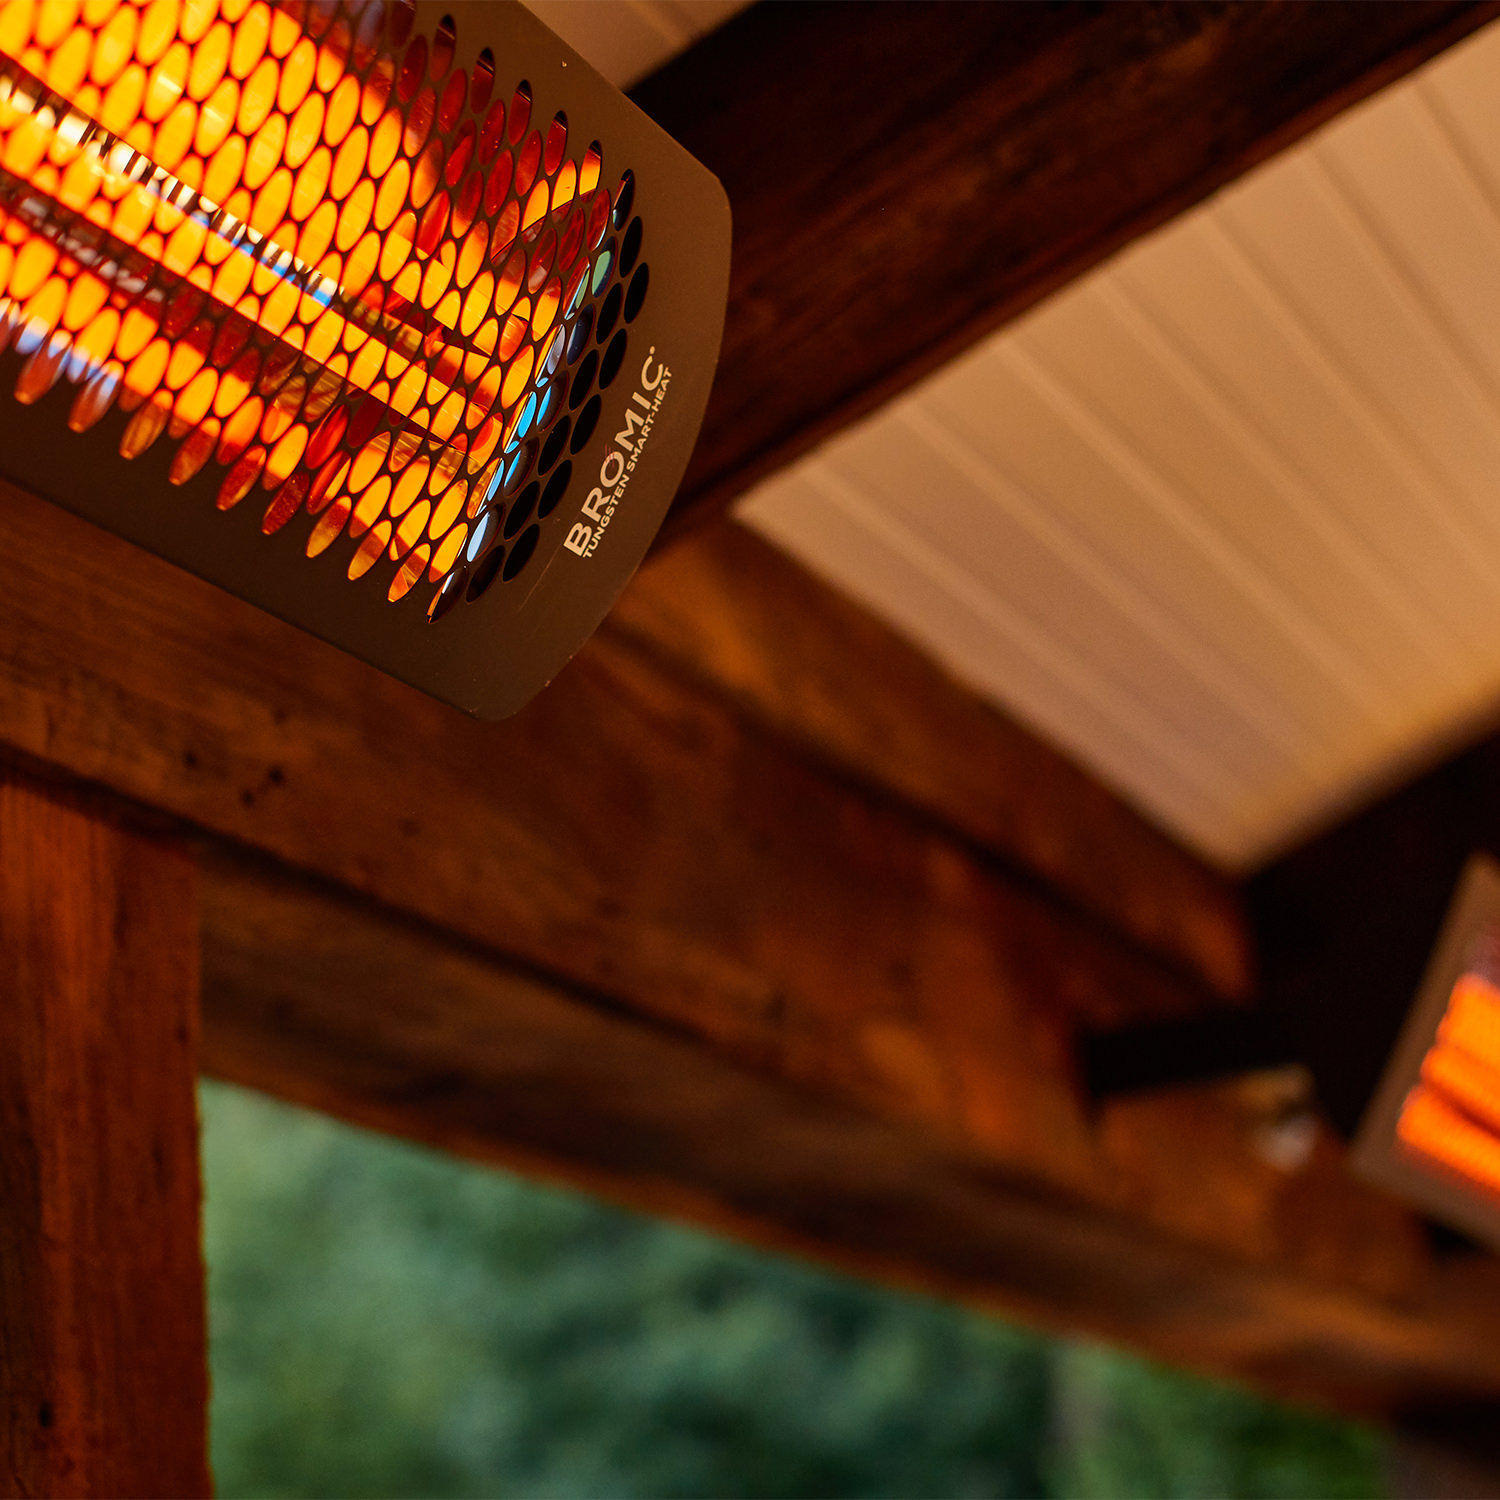 Bromic heaters are an aesthetic and effective way to heat outdoor living spaces, gaining 2 extra months in the spring and fall for comfortable outdoor enjoyment